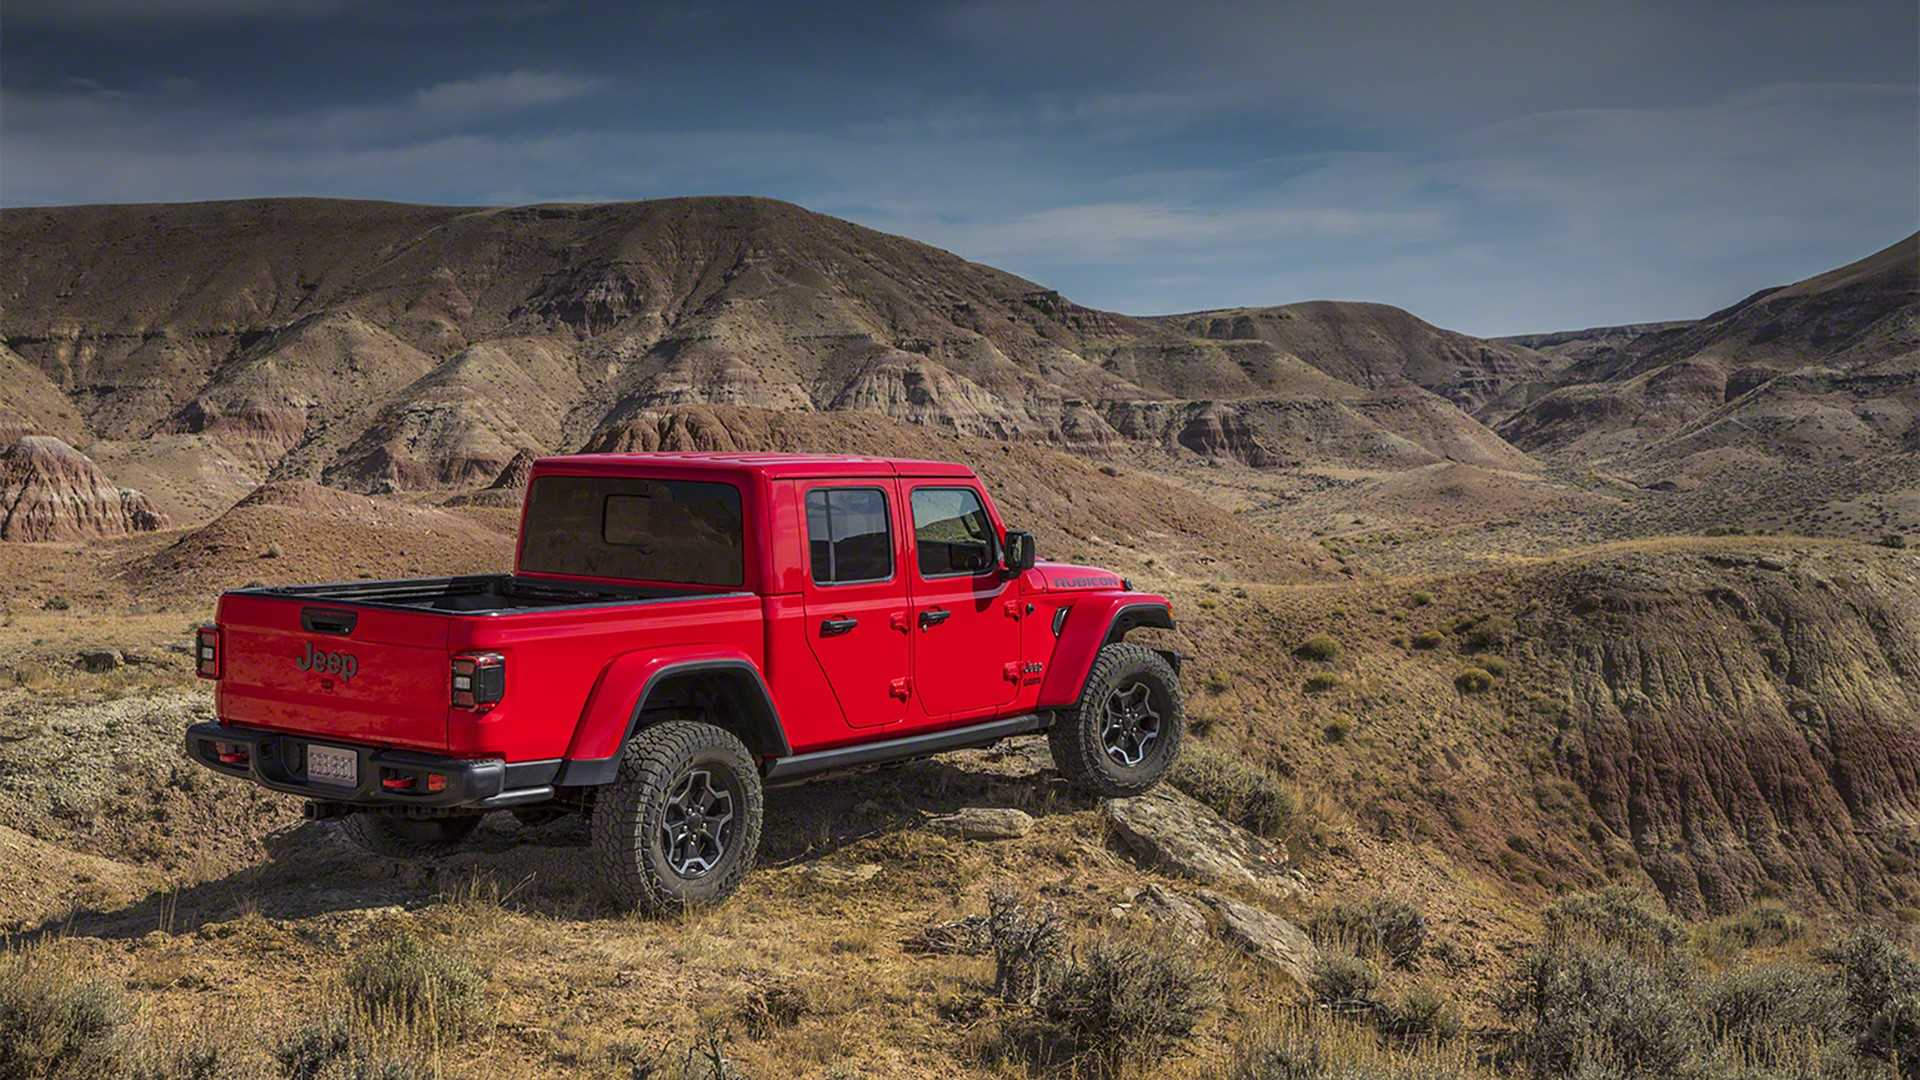 Jeep Rubicon Towing Capacity >> Jeep Configurator For 2020 Gladiator Pickup Truck Goes Live - autoevolution